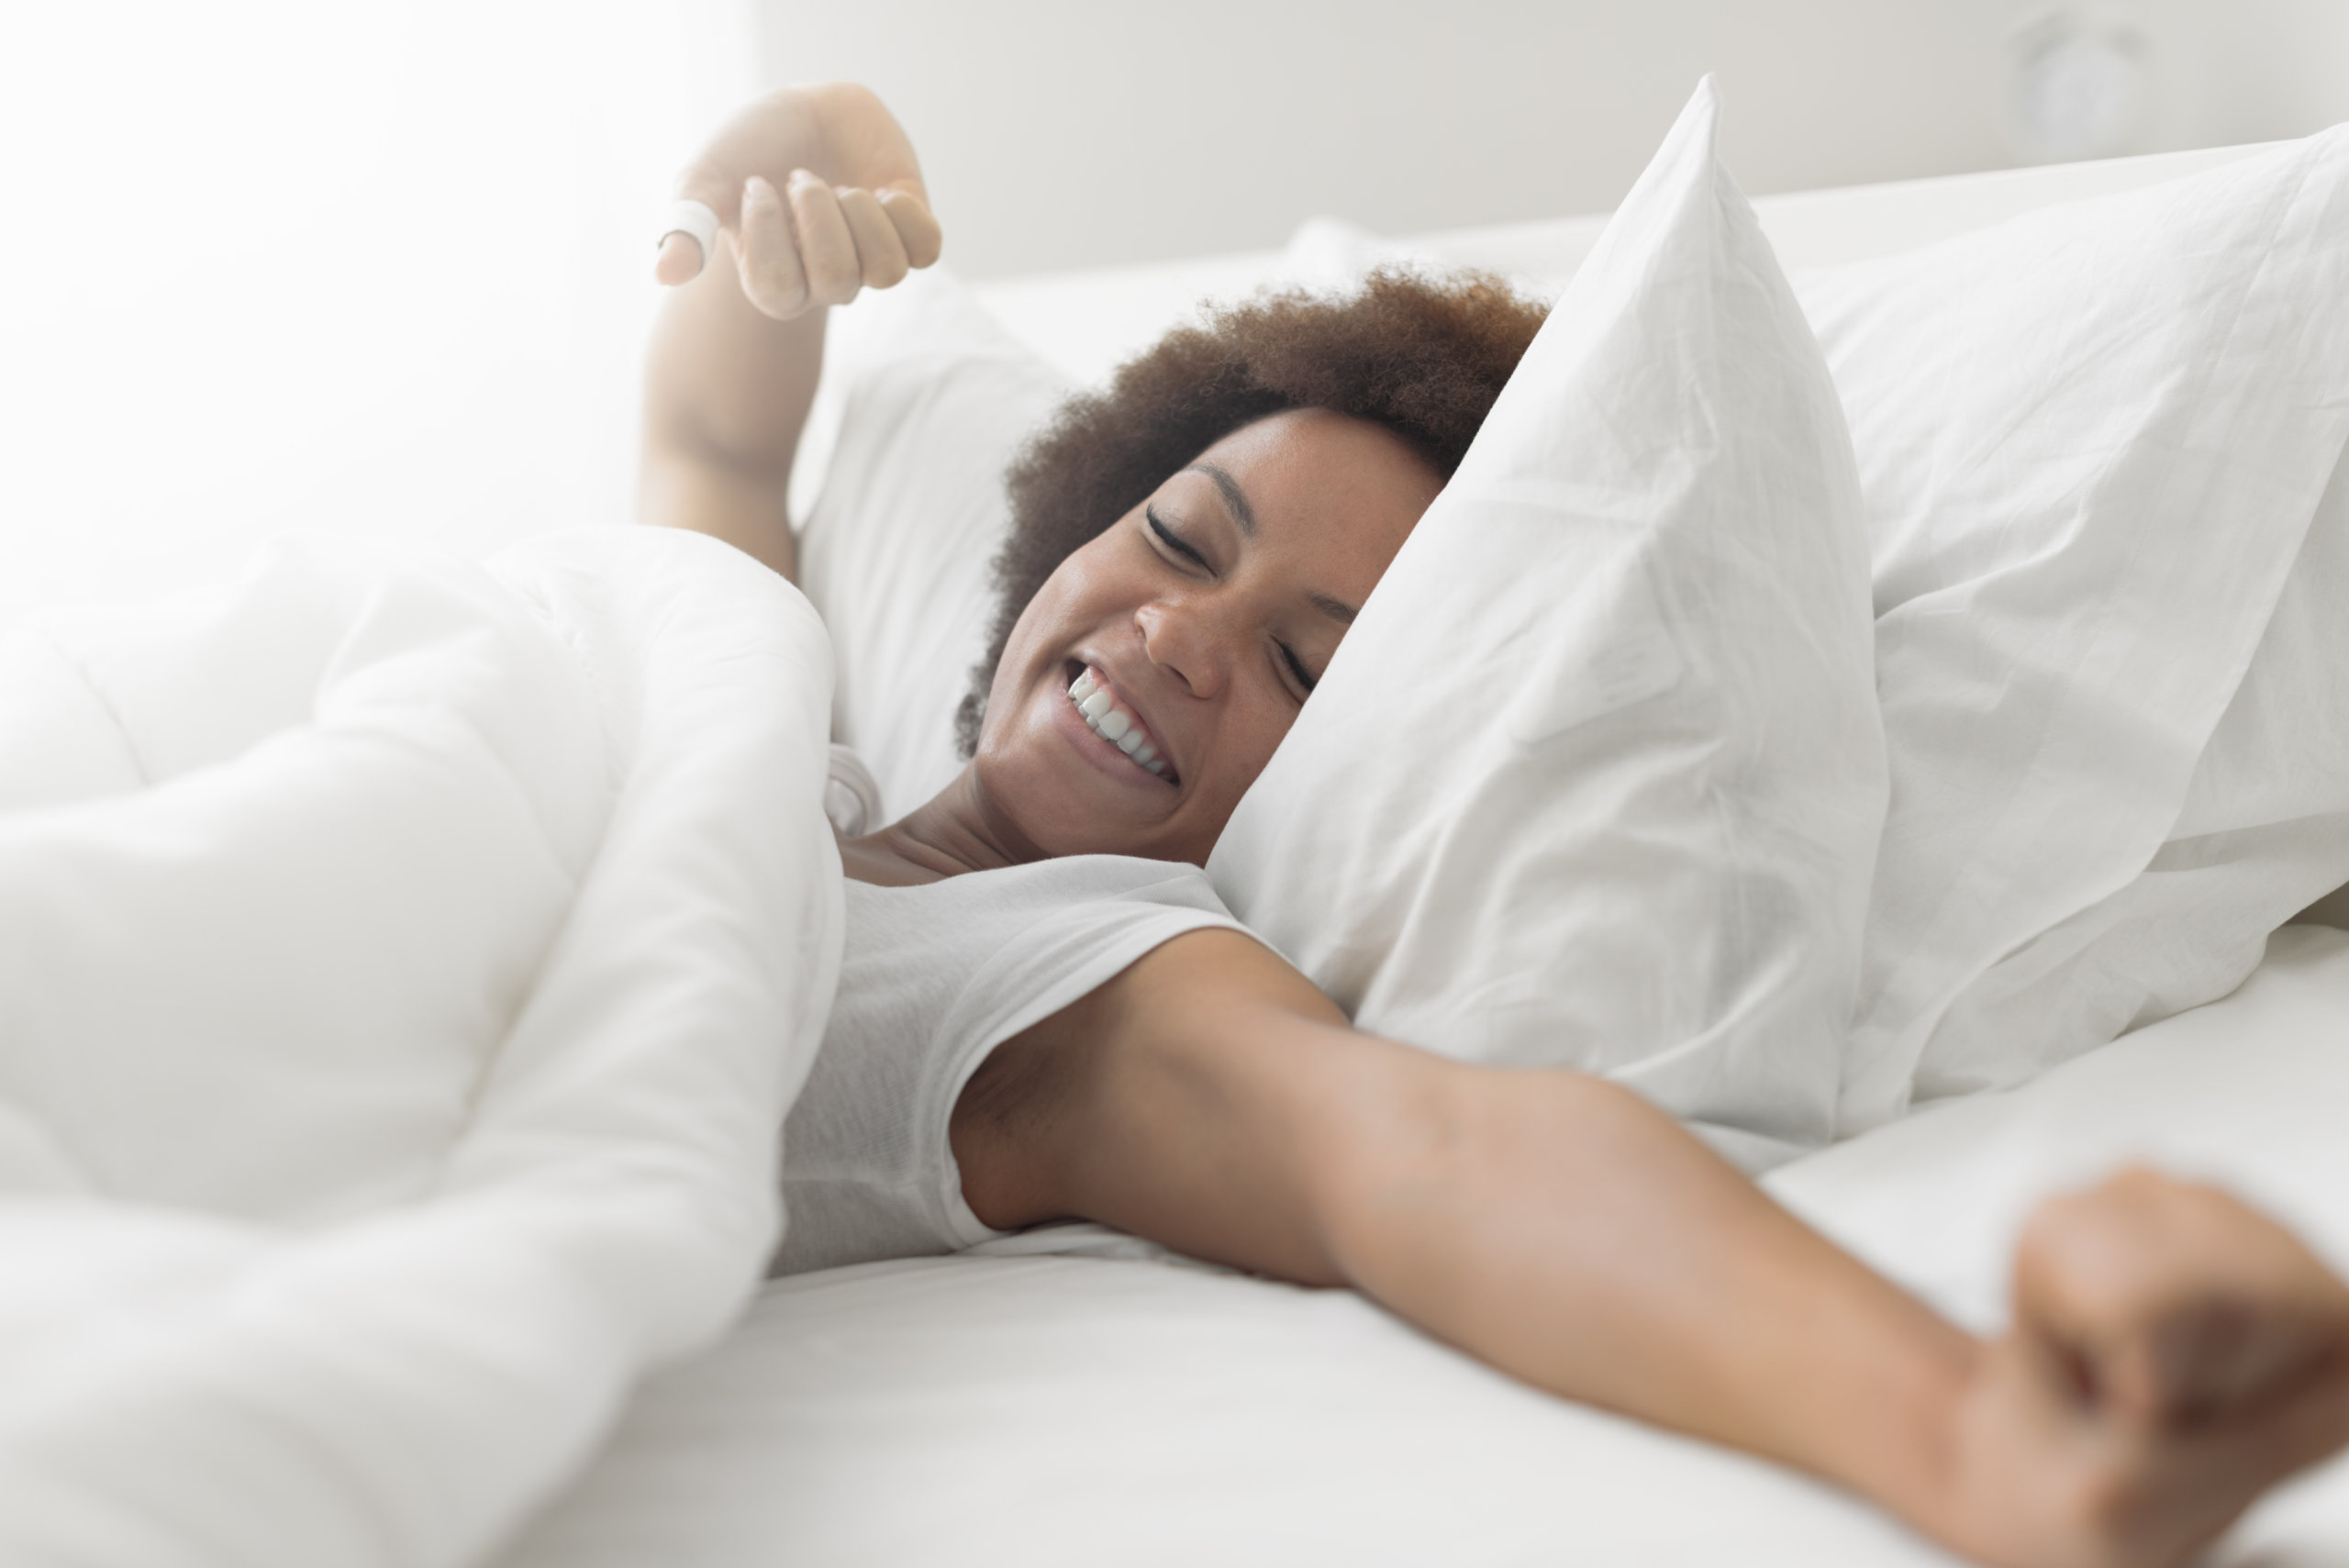 For a healthy heart, sleeping 6 to 7 hours each night is best - Study Finds